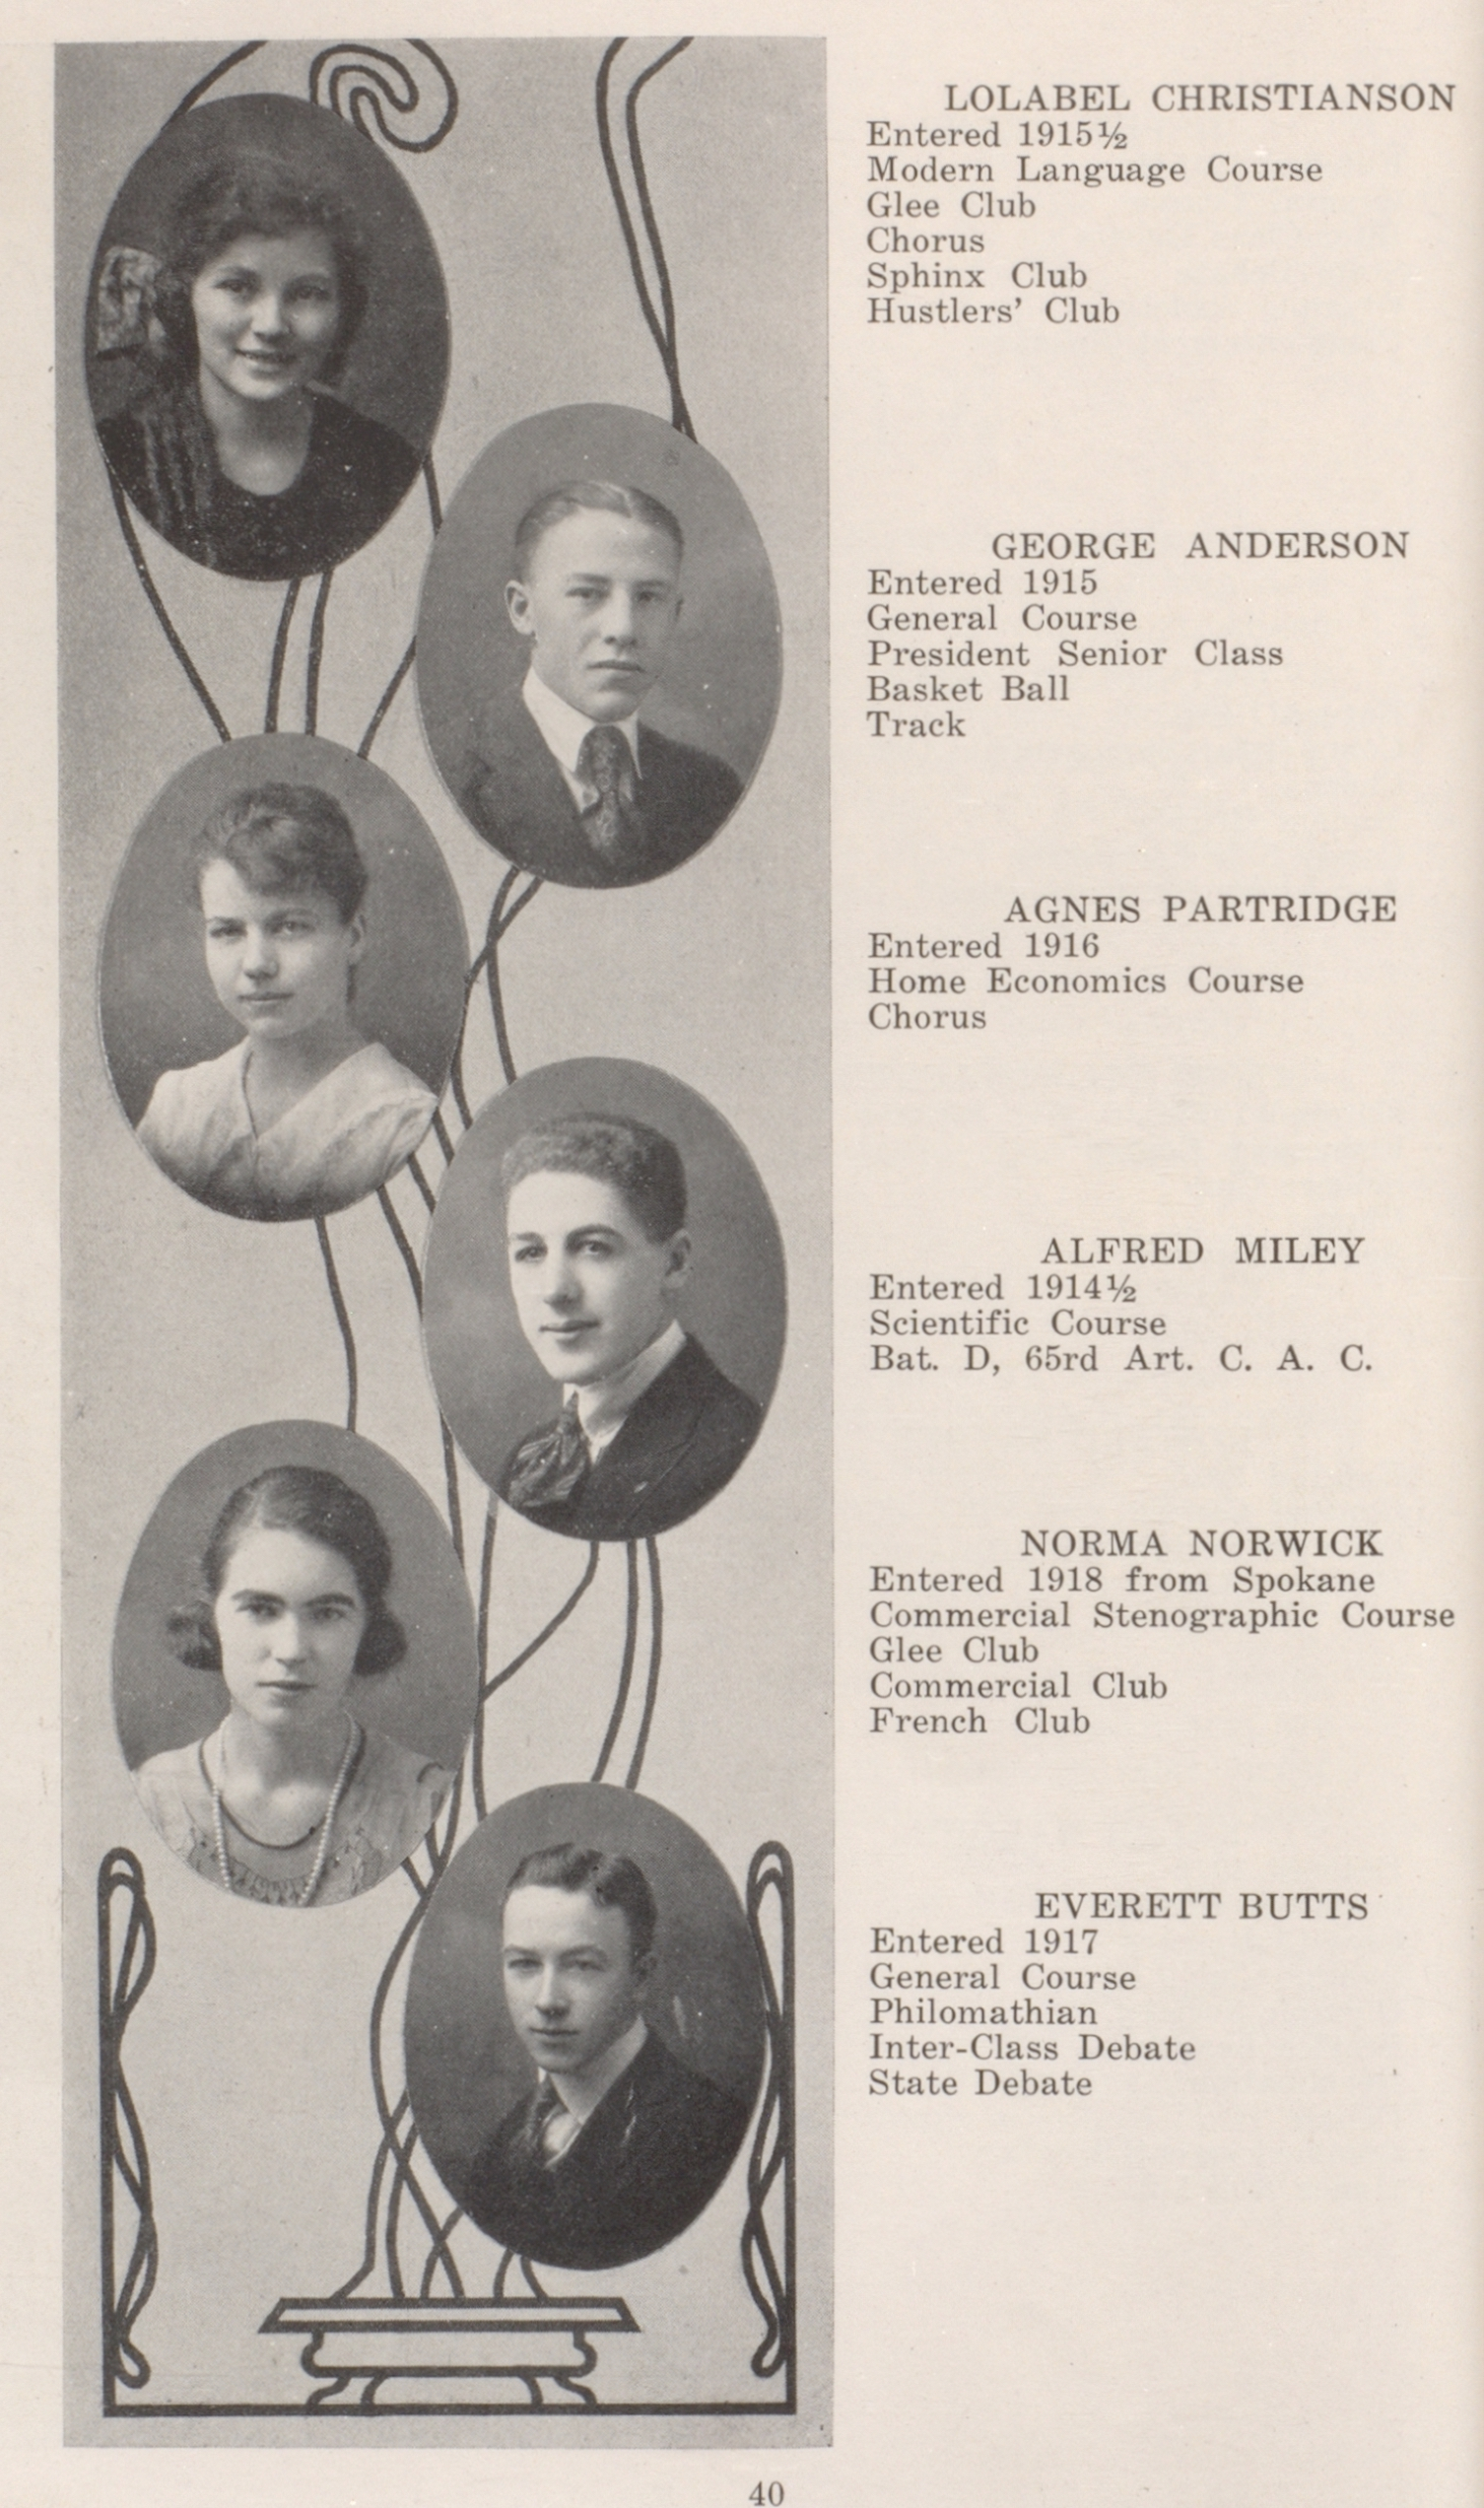 Yearbook page with student portraits and activities